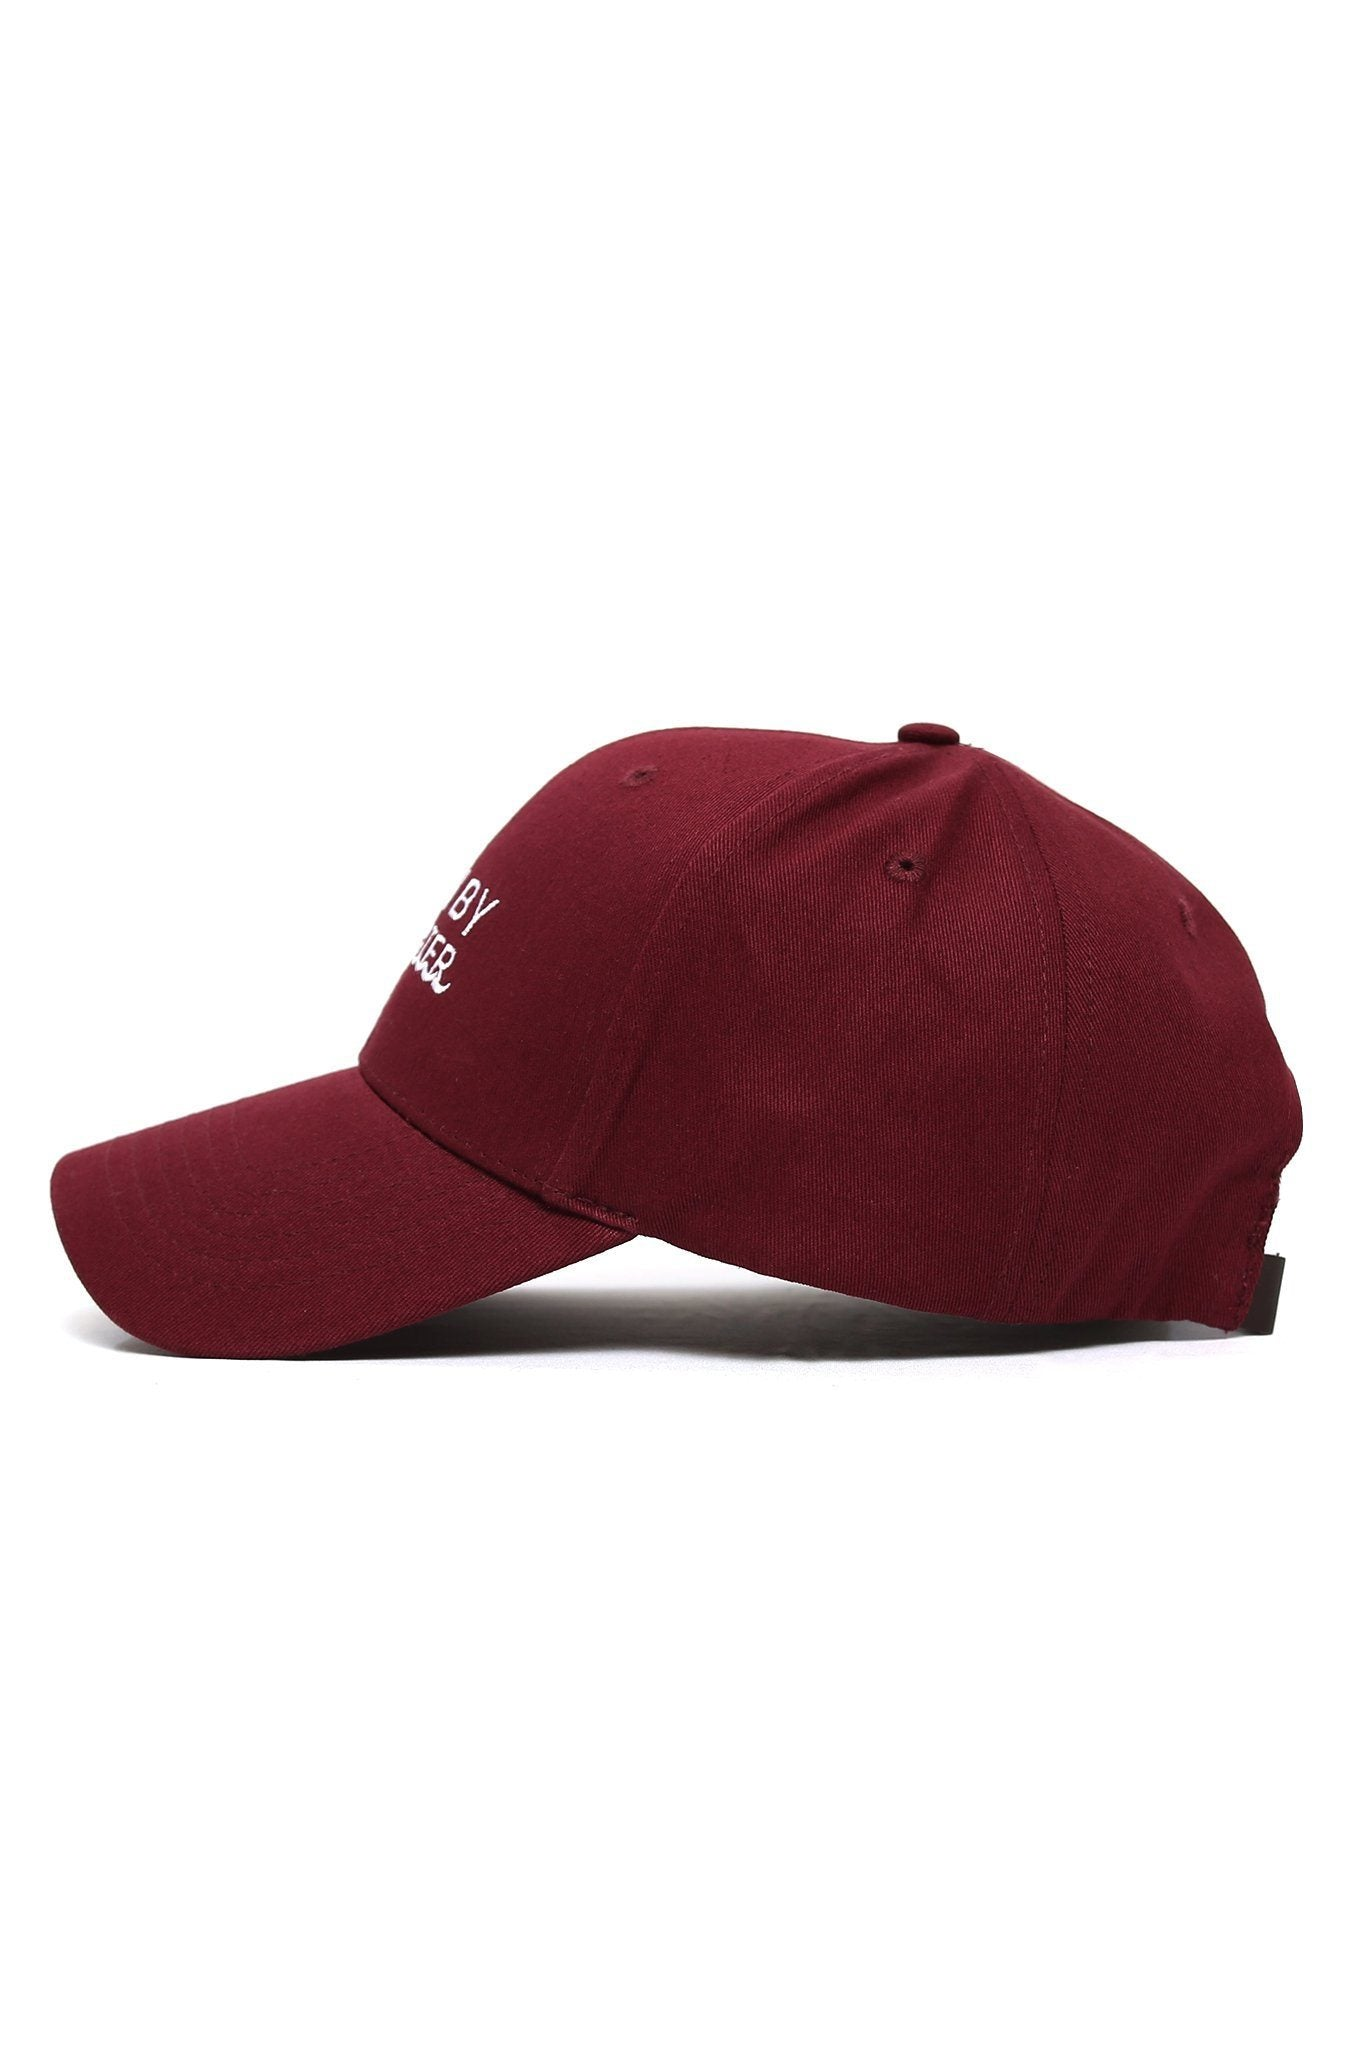 Born By Water Waves Cap - Maroon - Shore